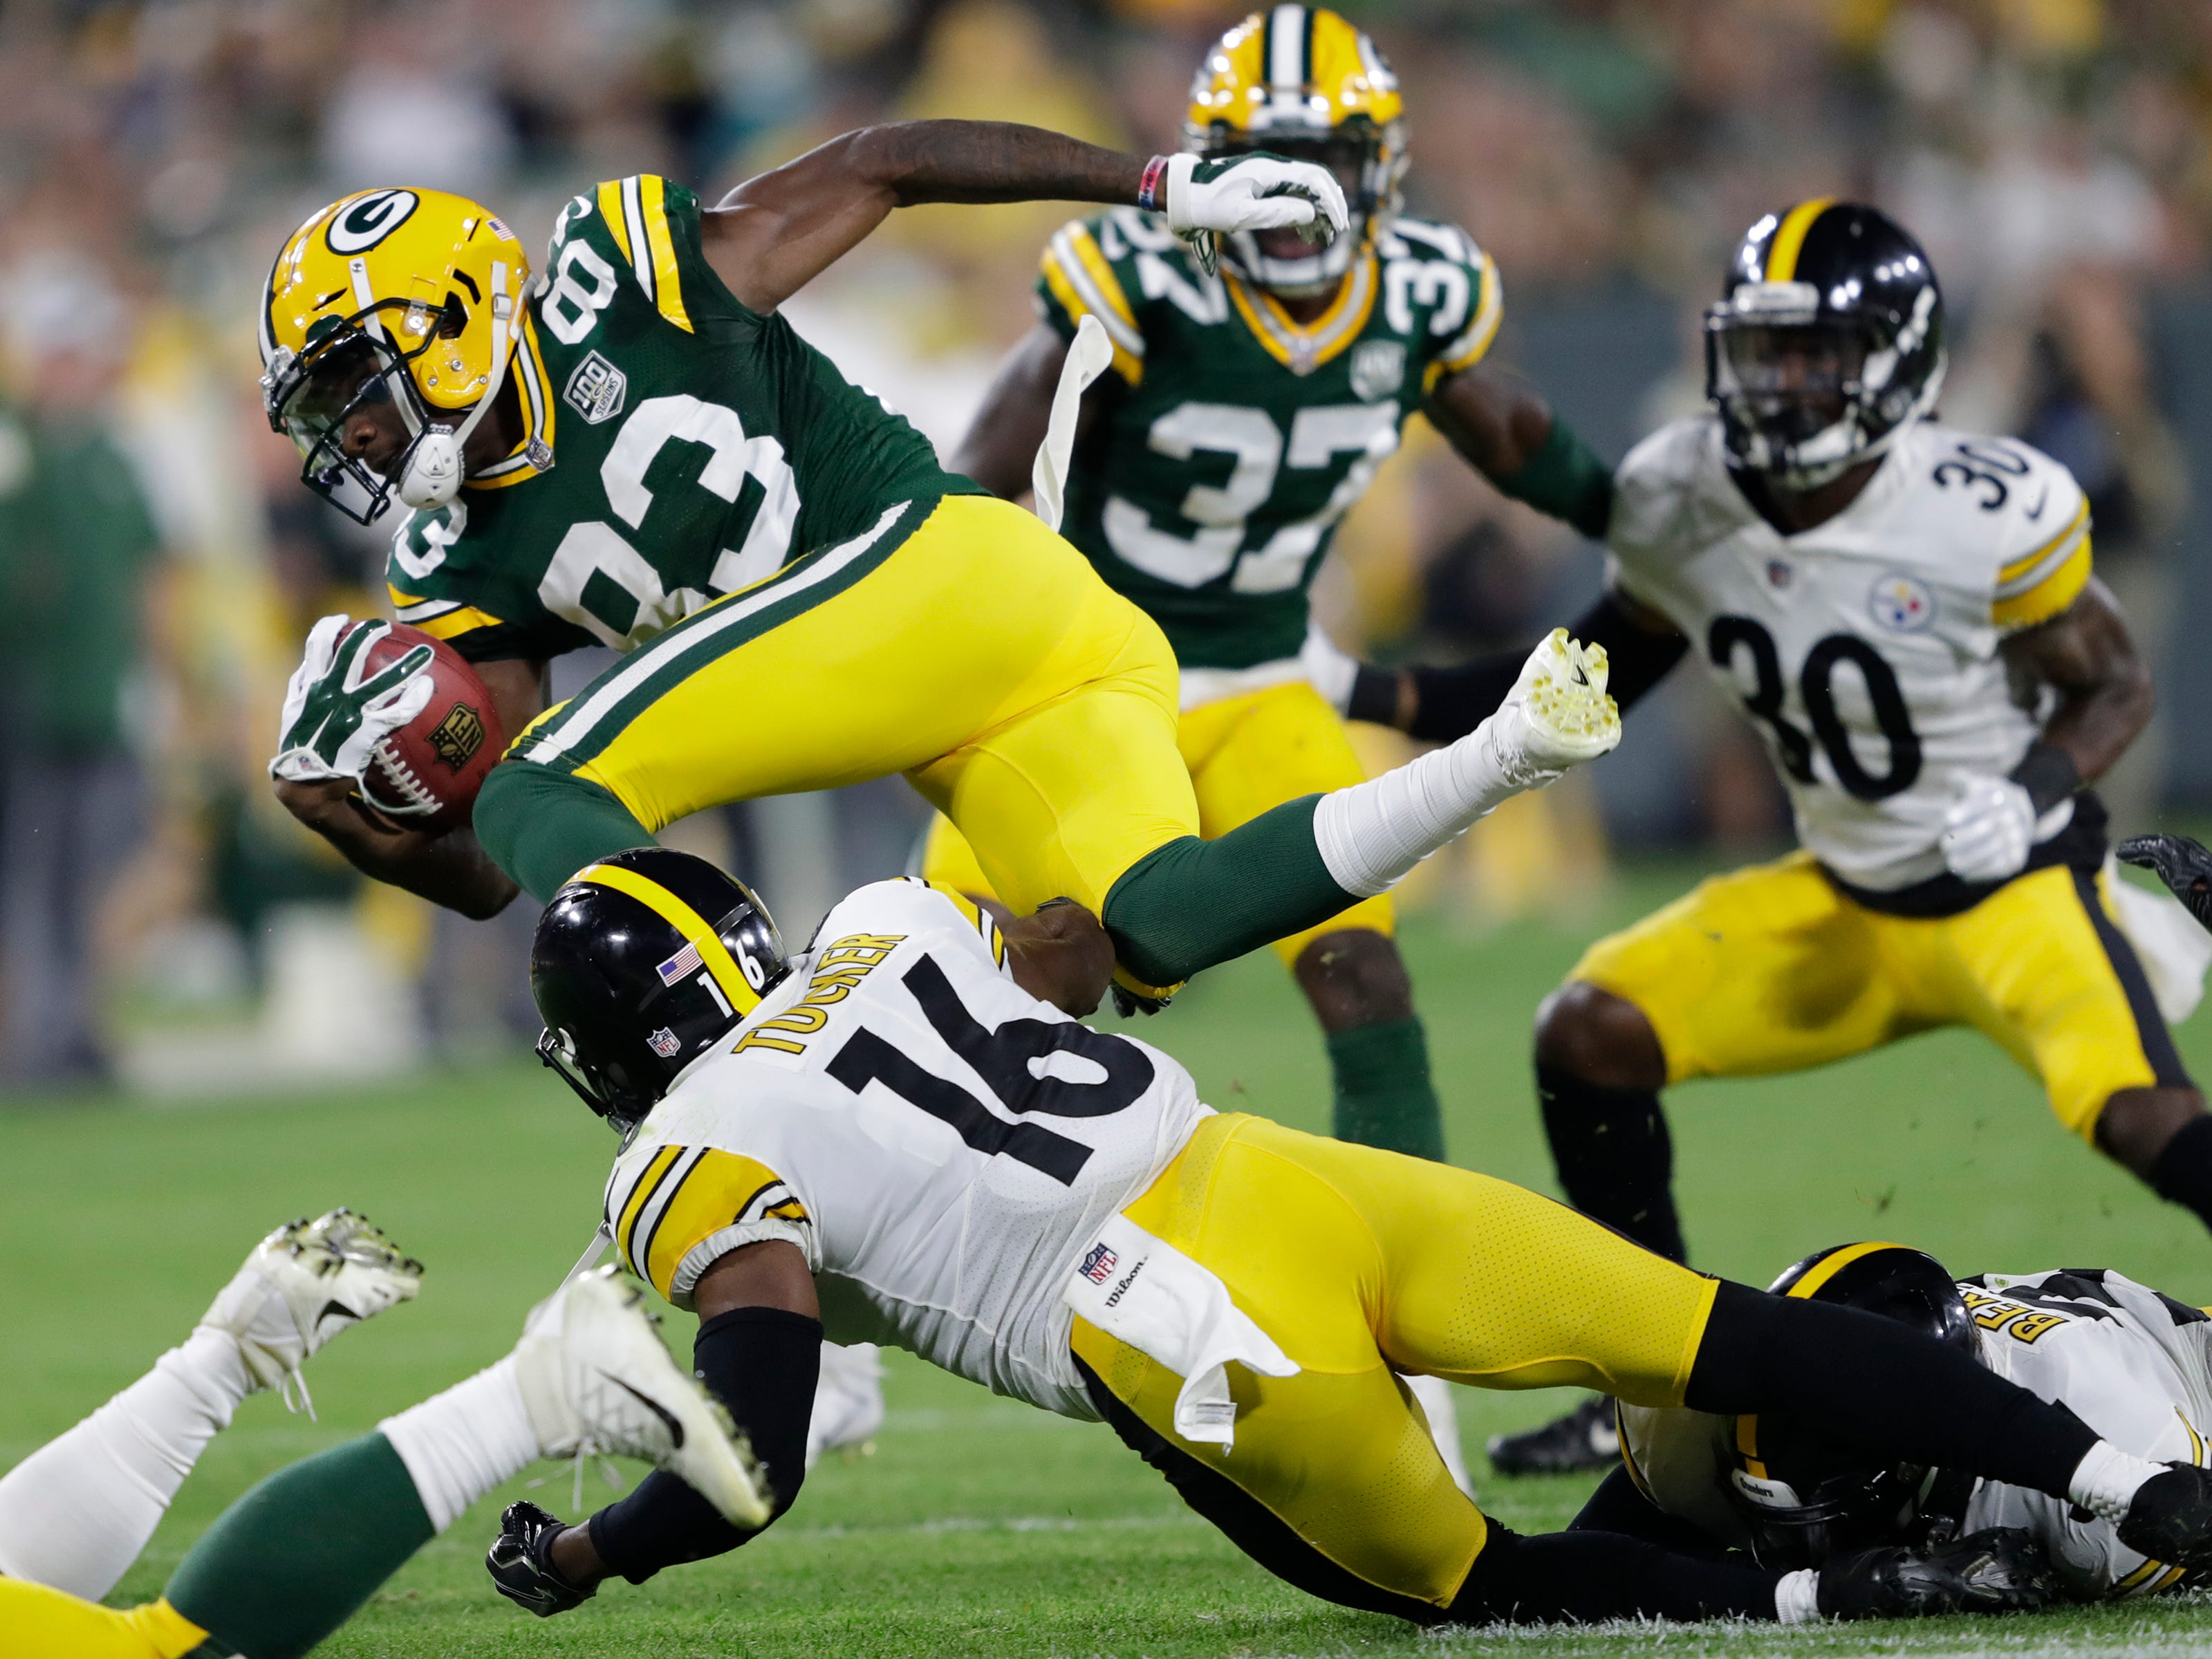 Green Bay Packers wide receiver Marquez Valdes-Scantling (83) runs back a kick off return against the Pittsburgh Steelers during their football game Thursday, August 16, 2018, at Lambeau Field in Green Bay, Wis.